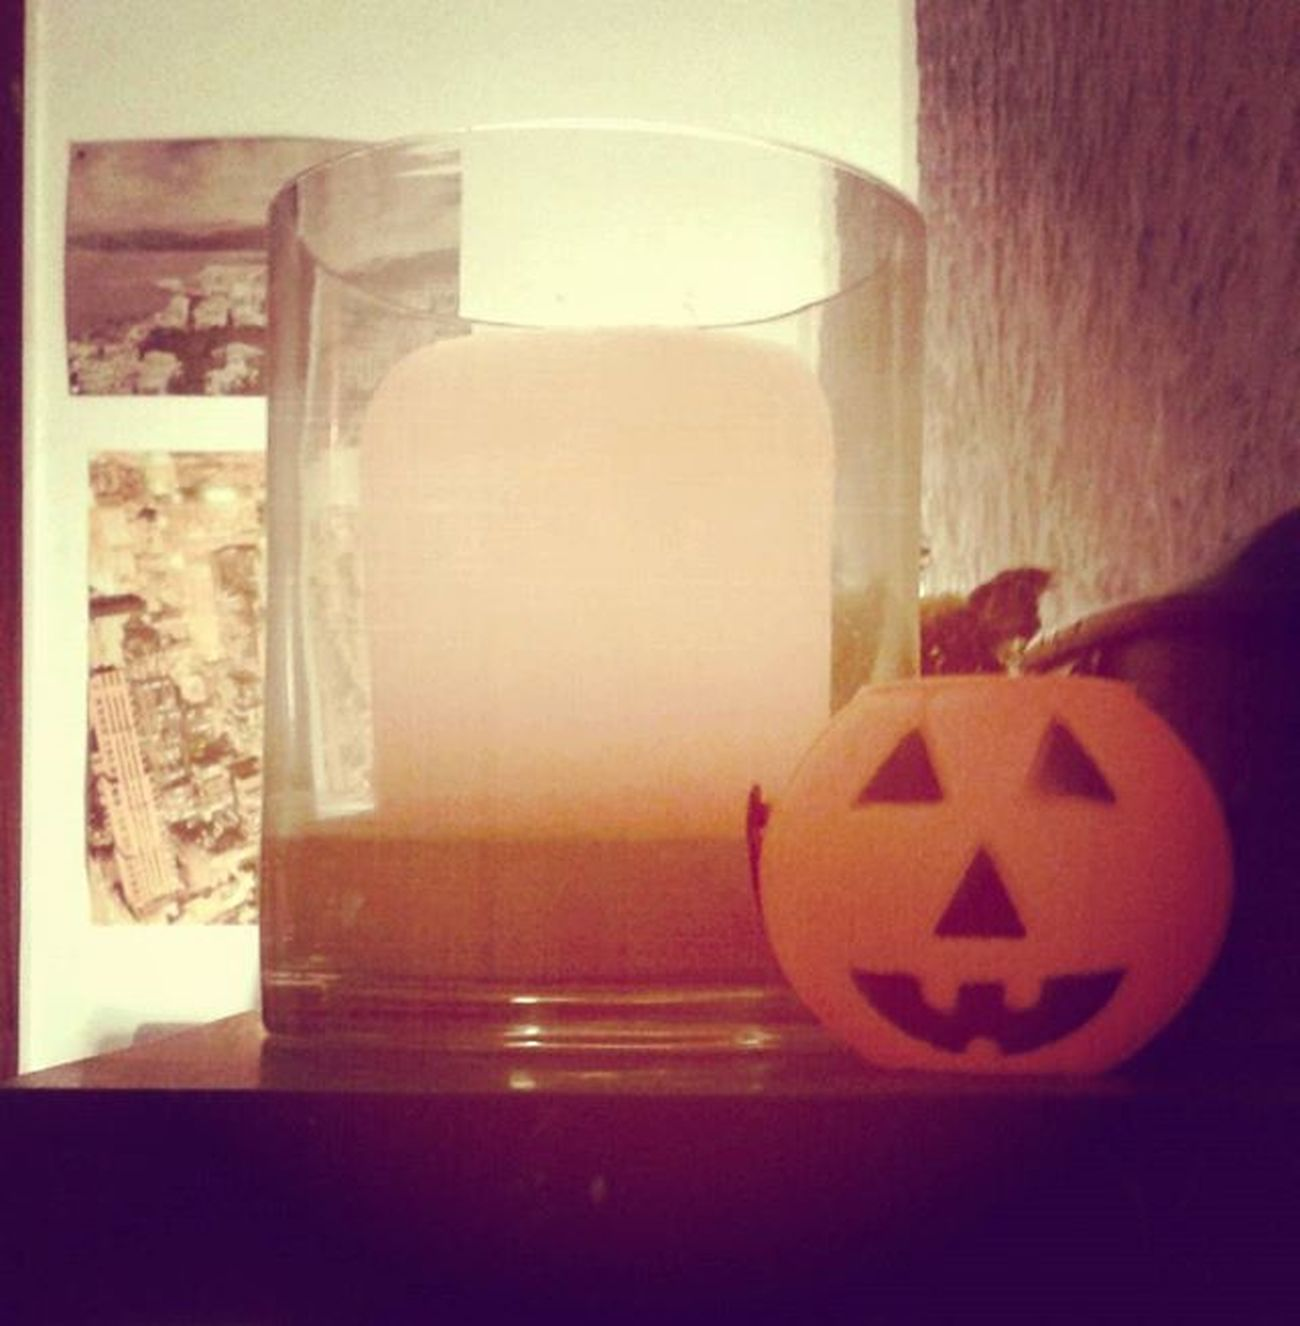 Happy Halloween AllSaintsDay Halloweve Jackolantern Pumpkin Pumpkinking Candle Autumn Trickortreat Saturday Evening Funday Barcelona Catalunya SPAIN